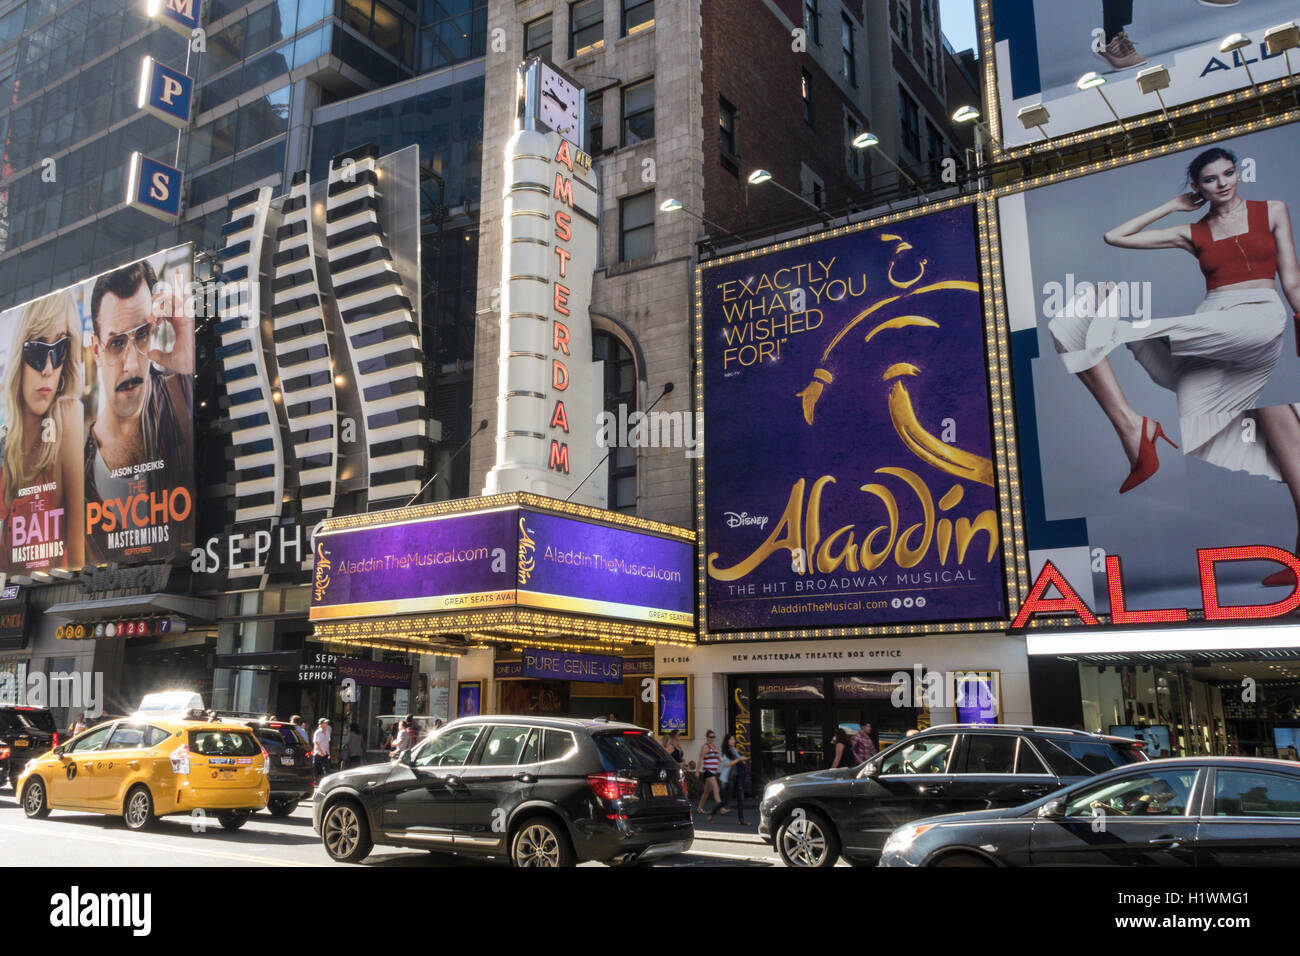 Aladdin Theater Marquee New Amsterdam Theater Times